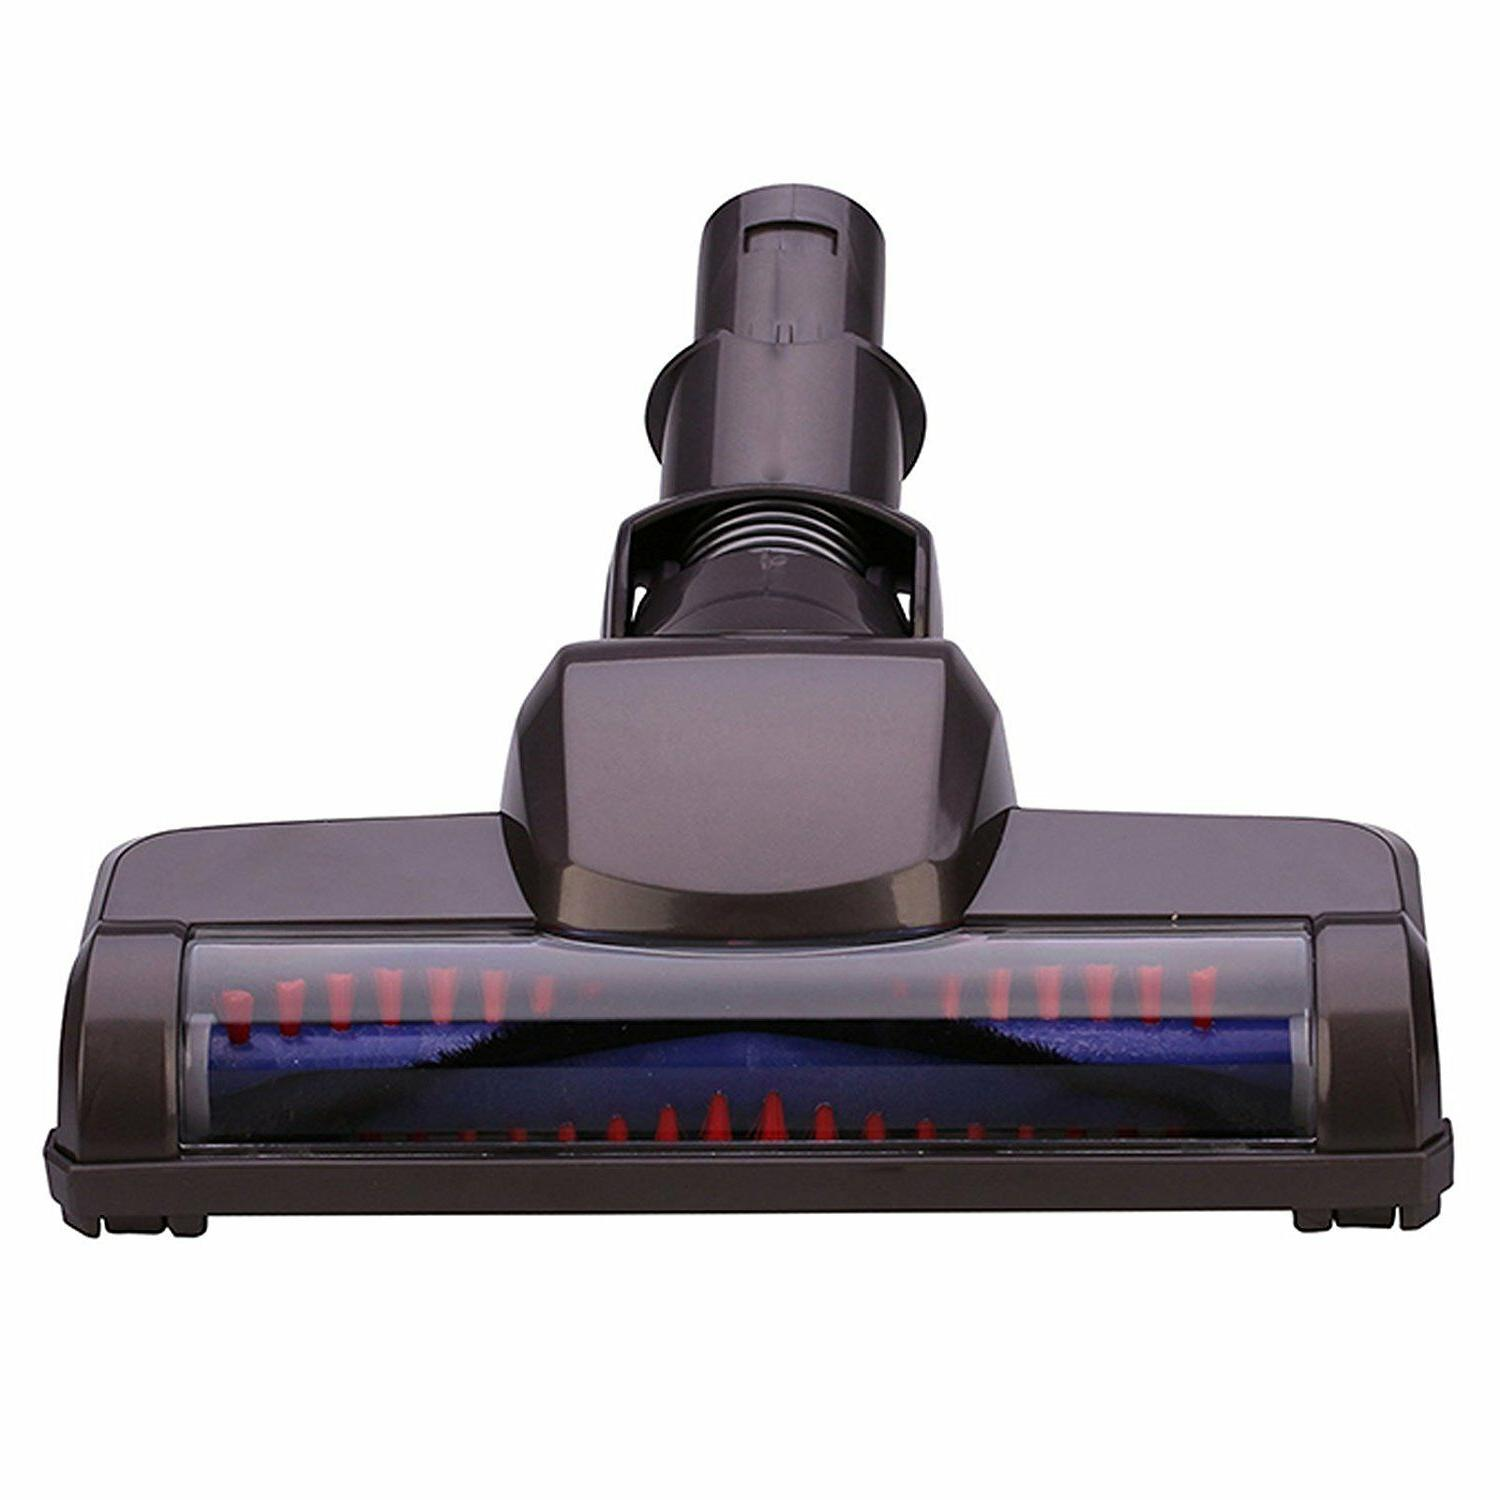 Motor Head Motorised Floor Tool Brushroll for Dyson V6 Fluff